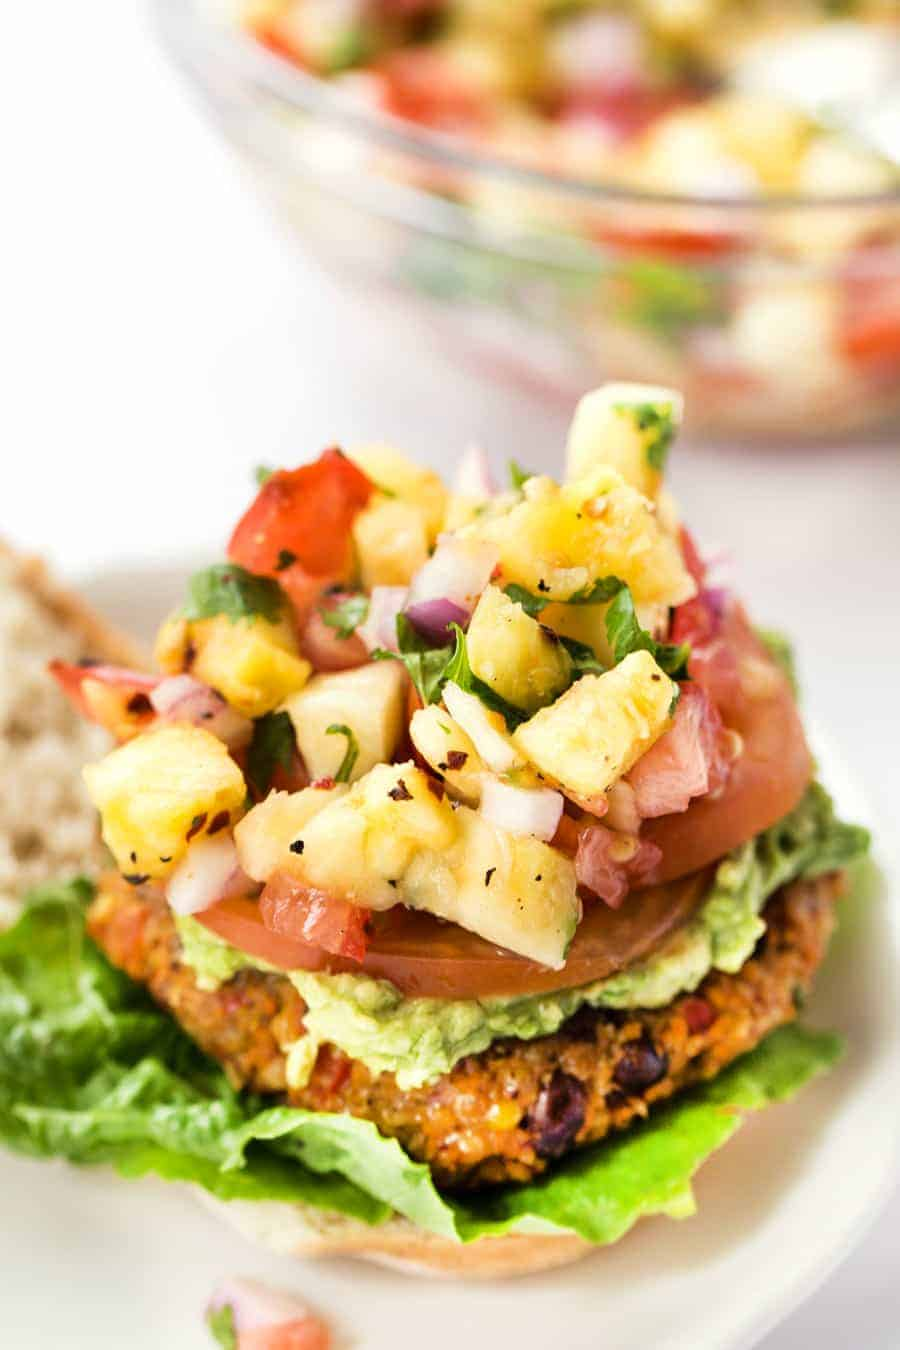 TEX MEX QUINOA BURGERS with corn, black beans and topped with a delicious pineapple salsa!